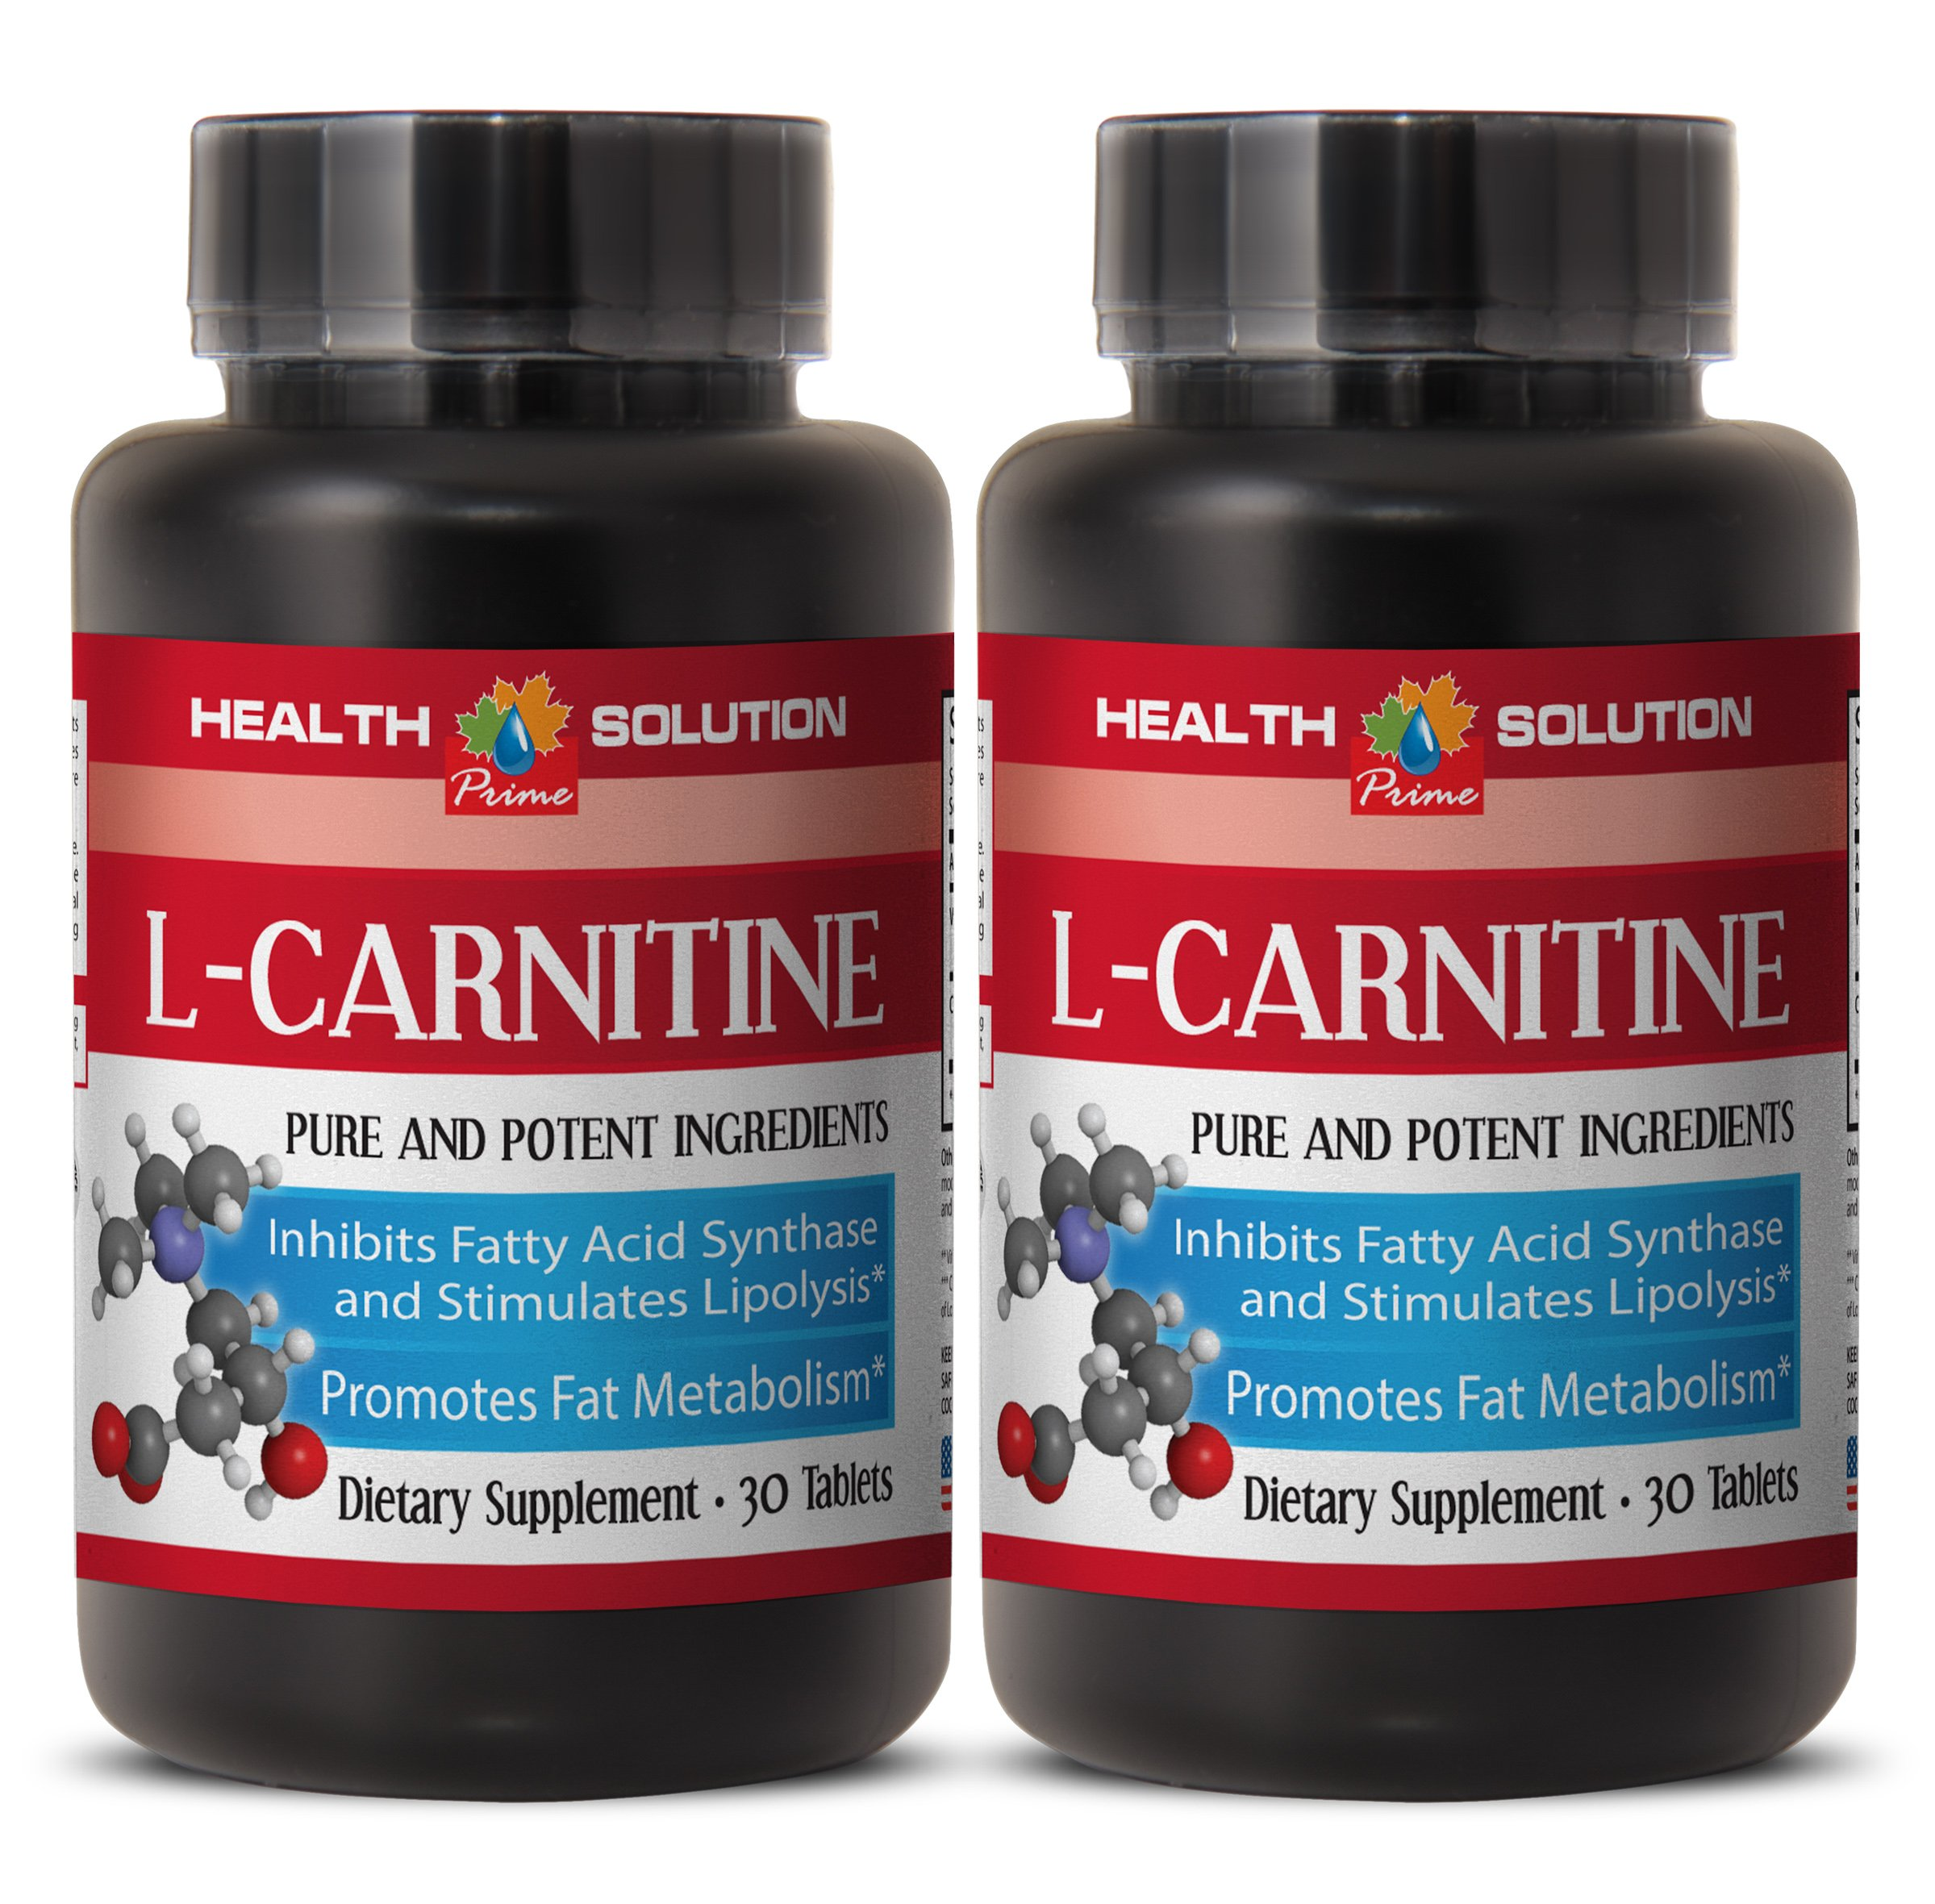 Fat loss diet - NATURAL L-CARNITINE 500MG - Carnitine metabolism - 2 Bottle (60 Tablets) by Health Solution Prime